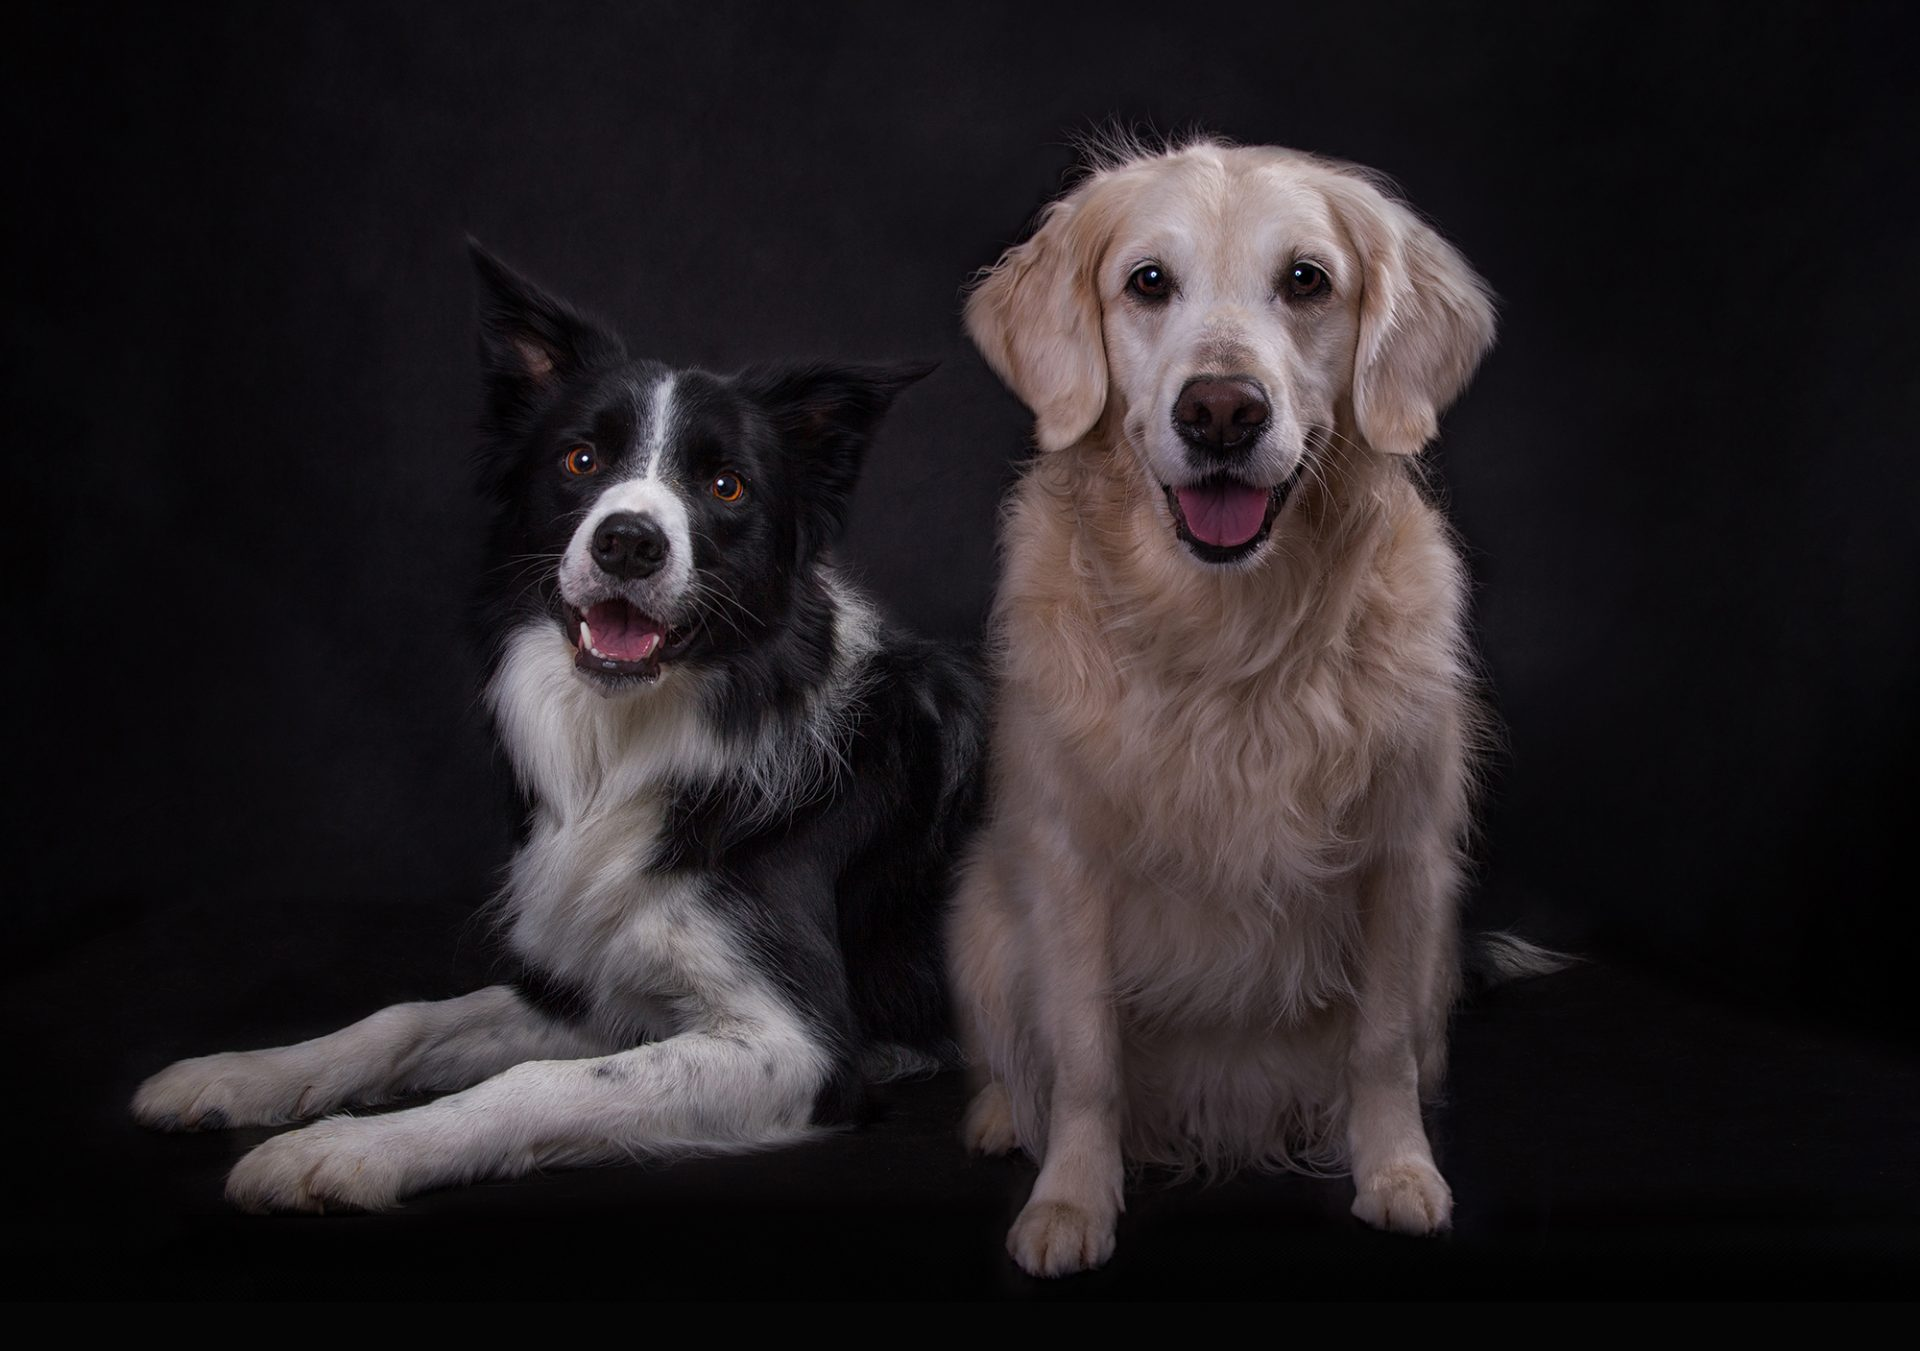 border collie and golden retriever dogs in studio